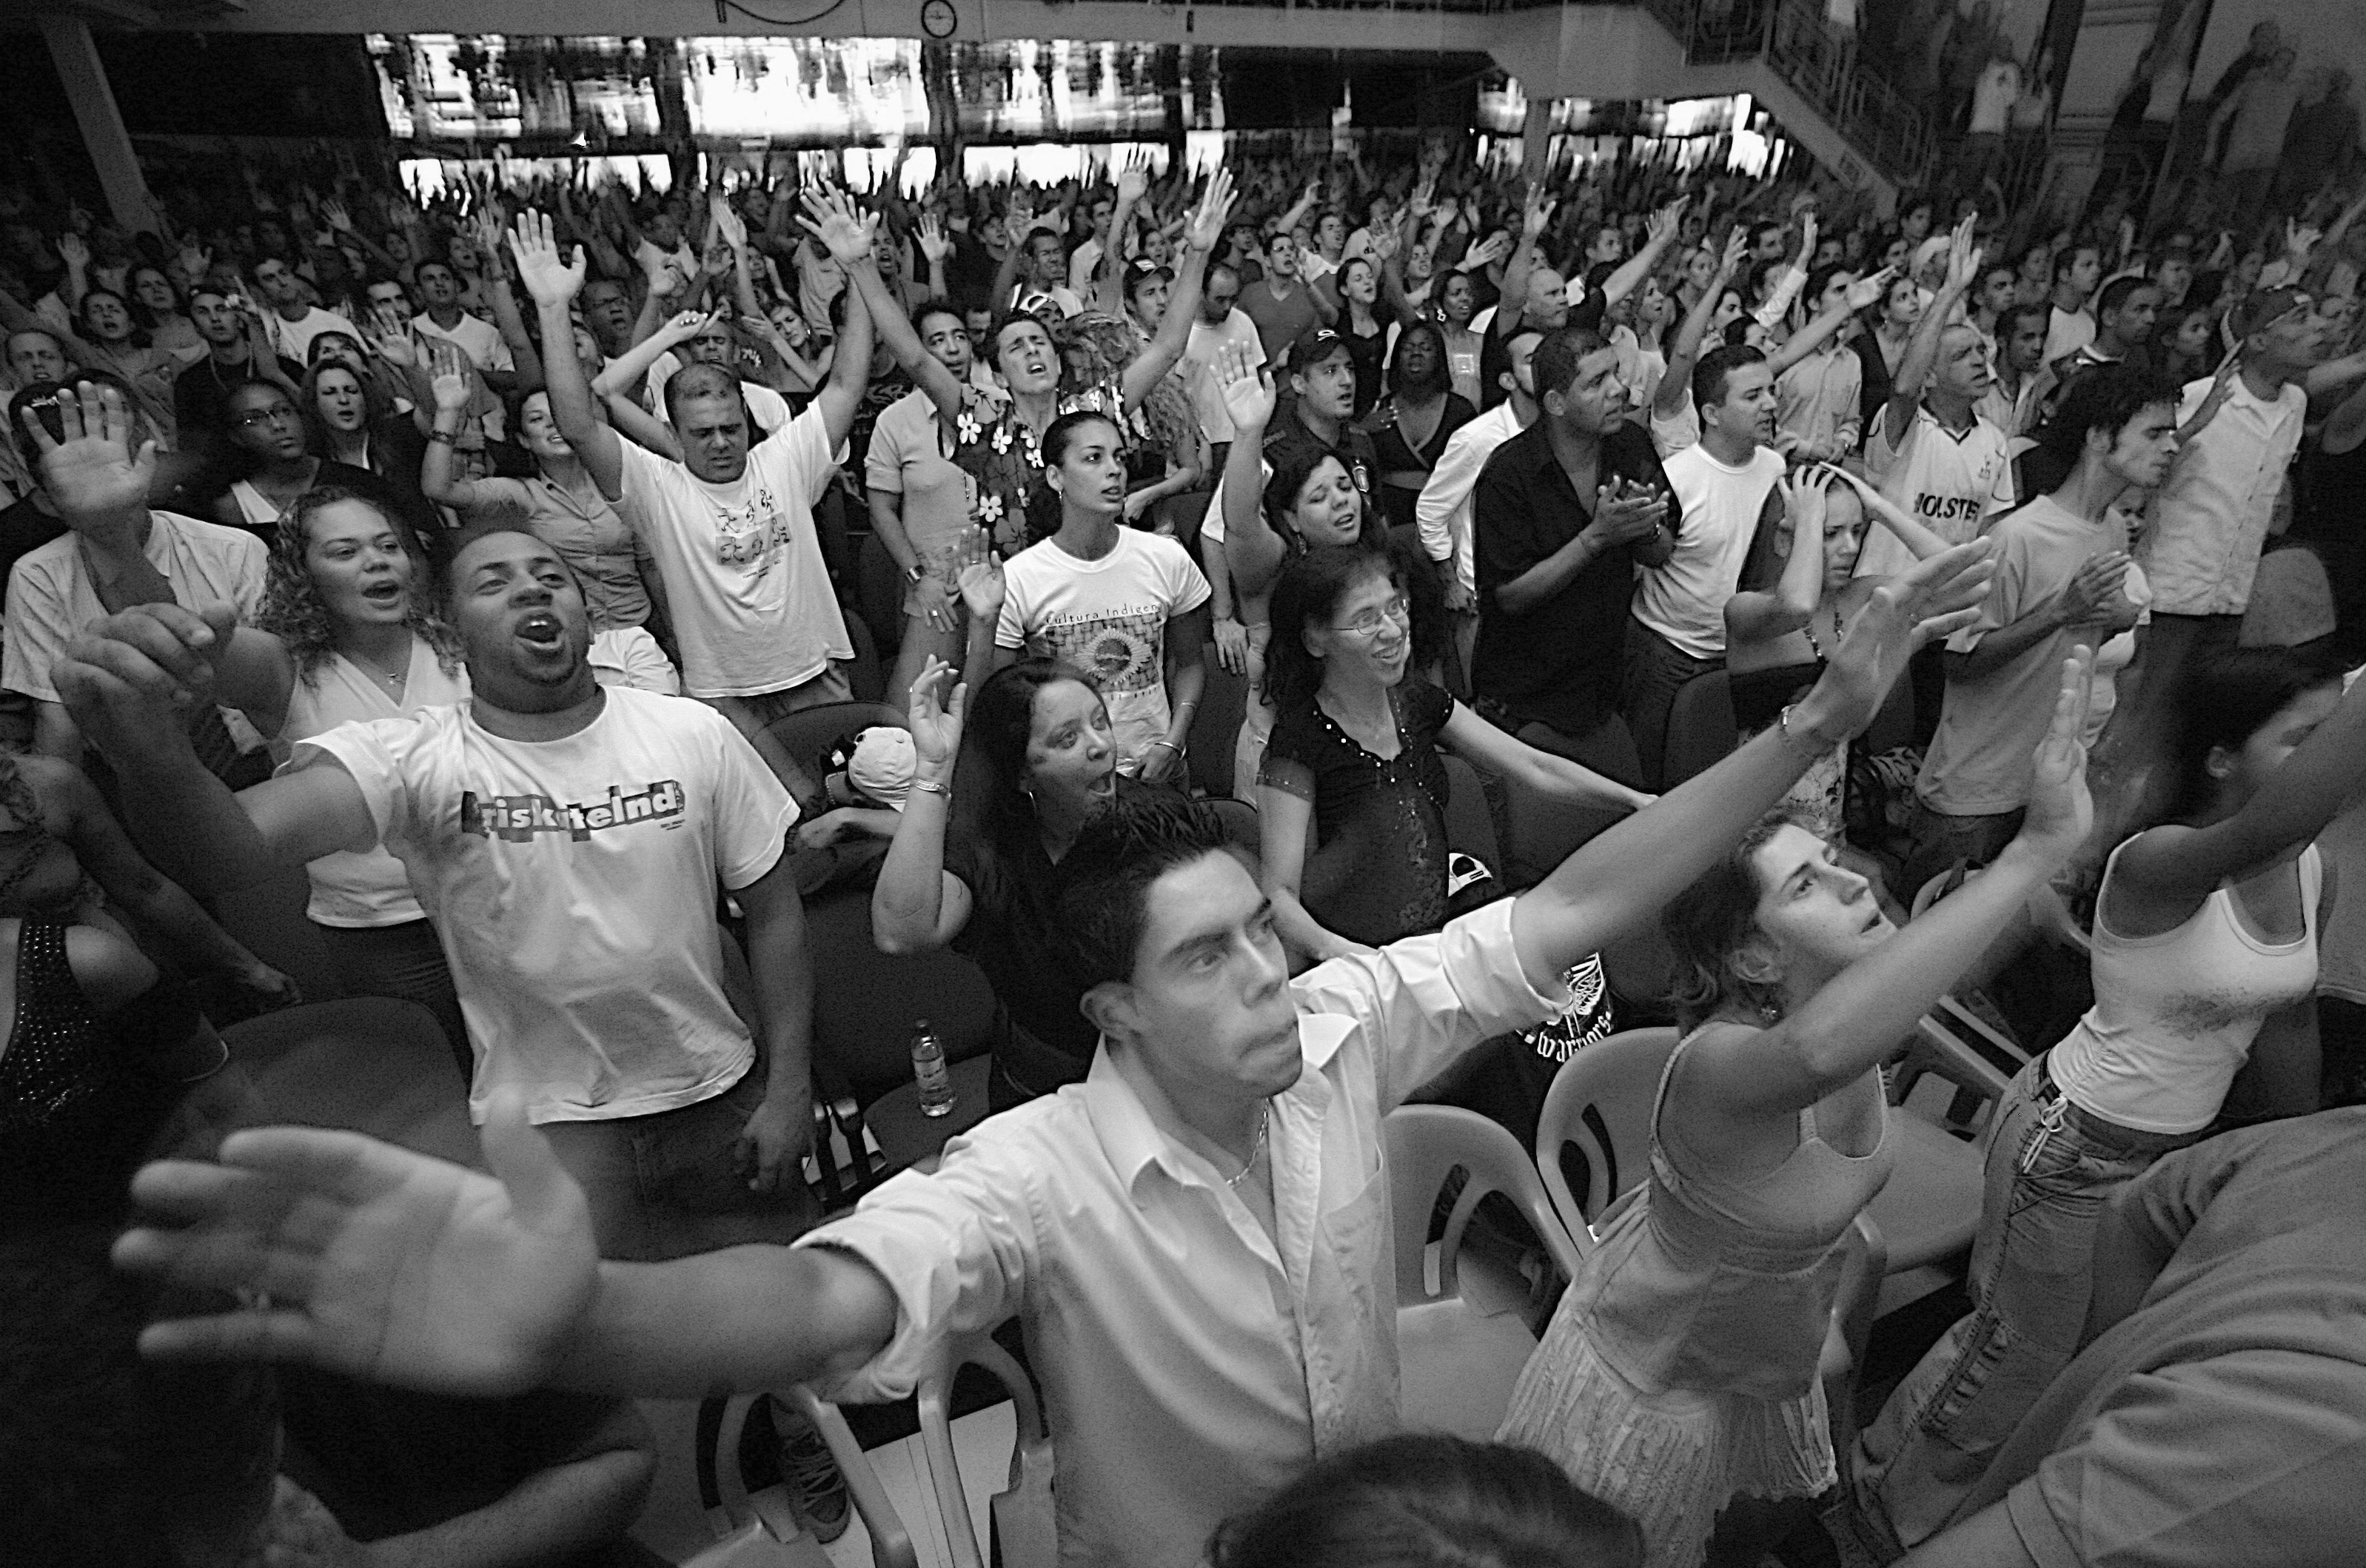 Evangelical protestantism – the new religion of Latin America's poor.